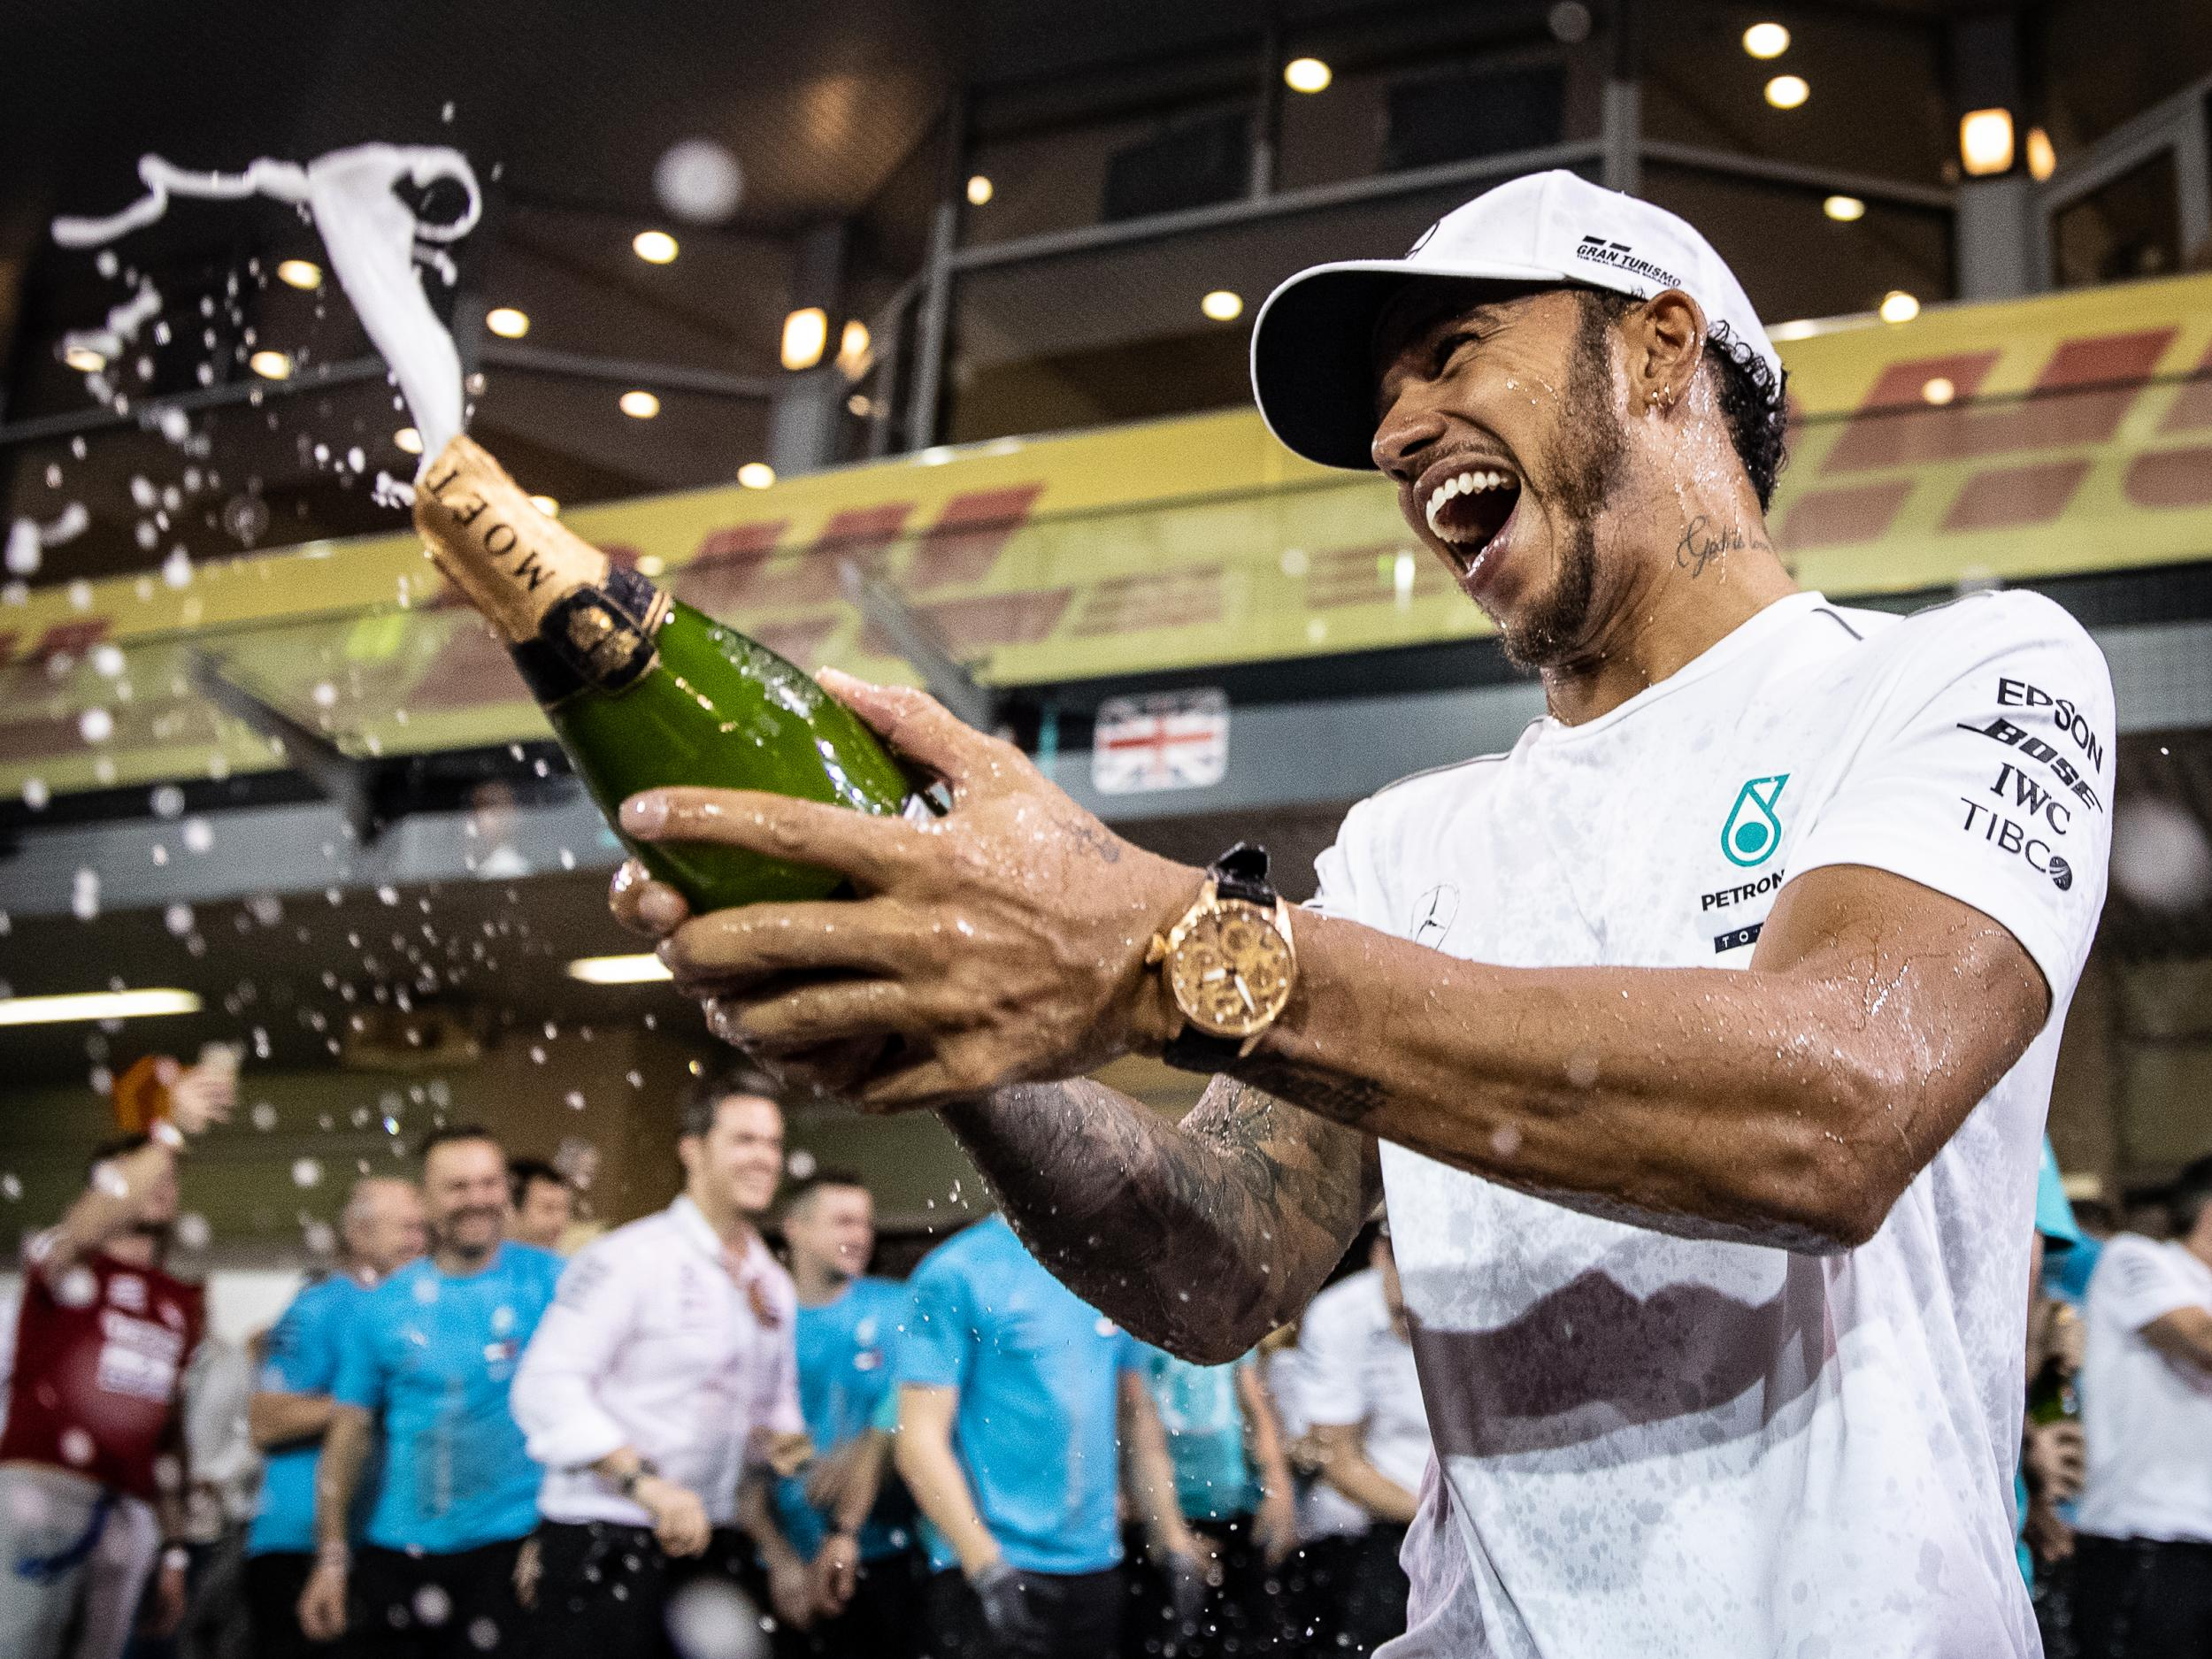 Lewis Hamilton: F1 world champions named Peta's 2018 Person of the Year for outspoken views